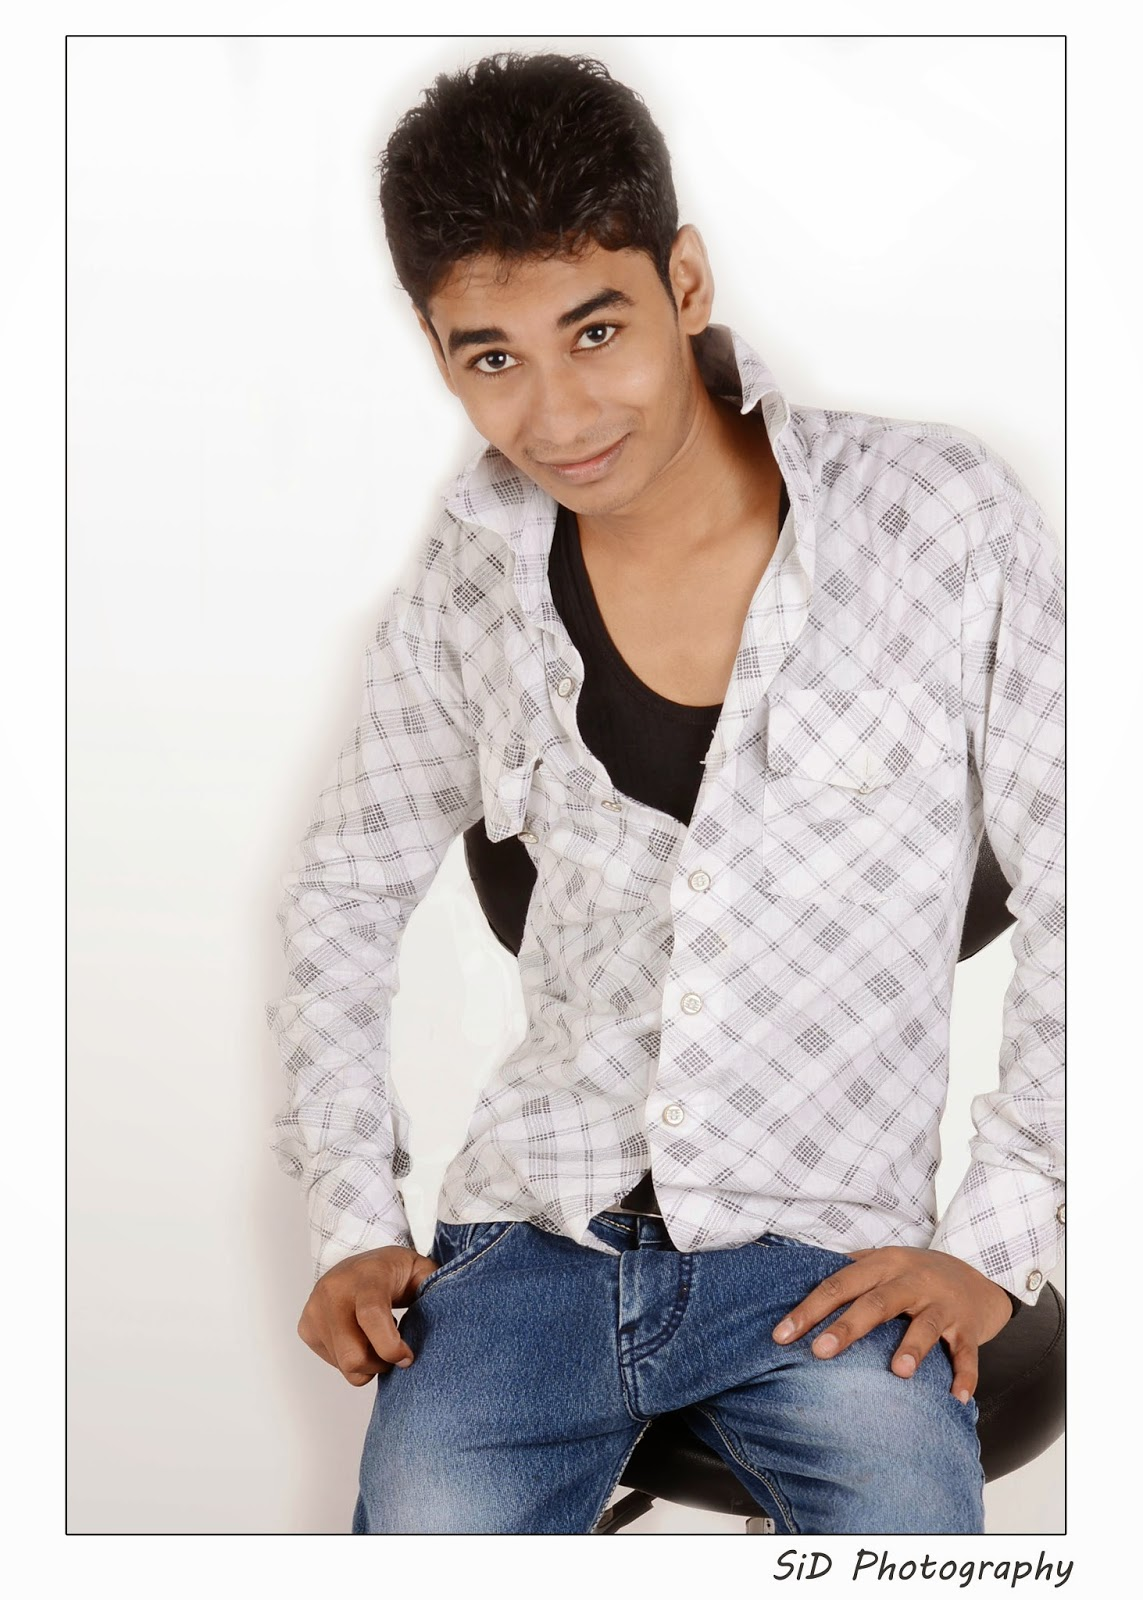 Shahzad Hussain Model  Indian Male Model Shahzad Hussain Indian